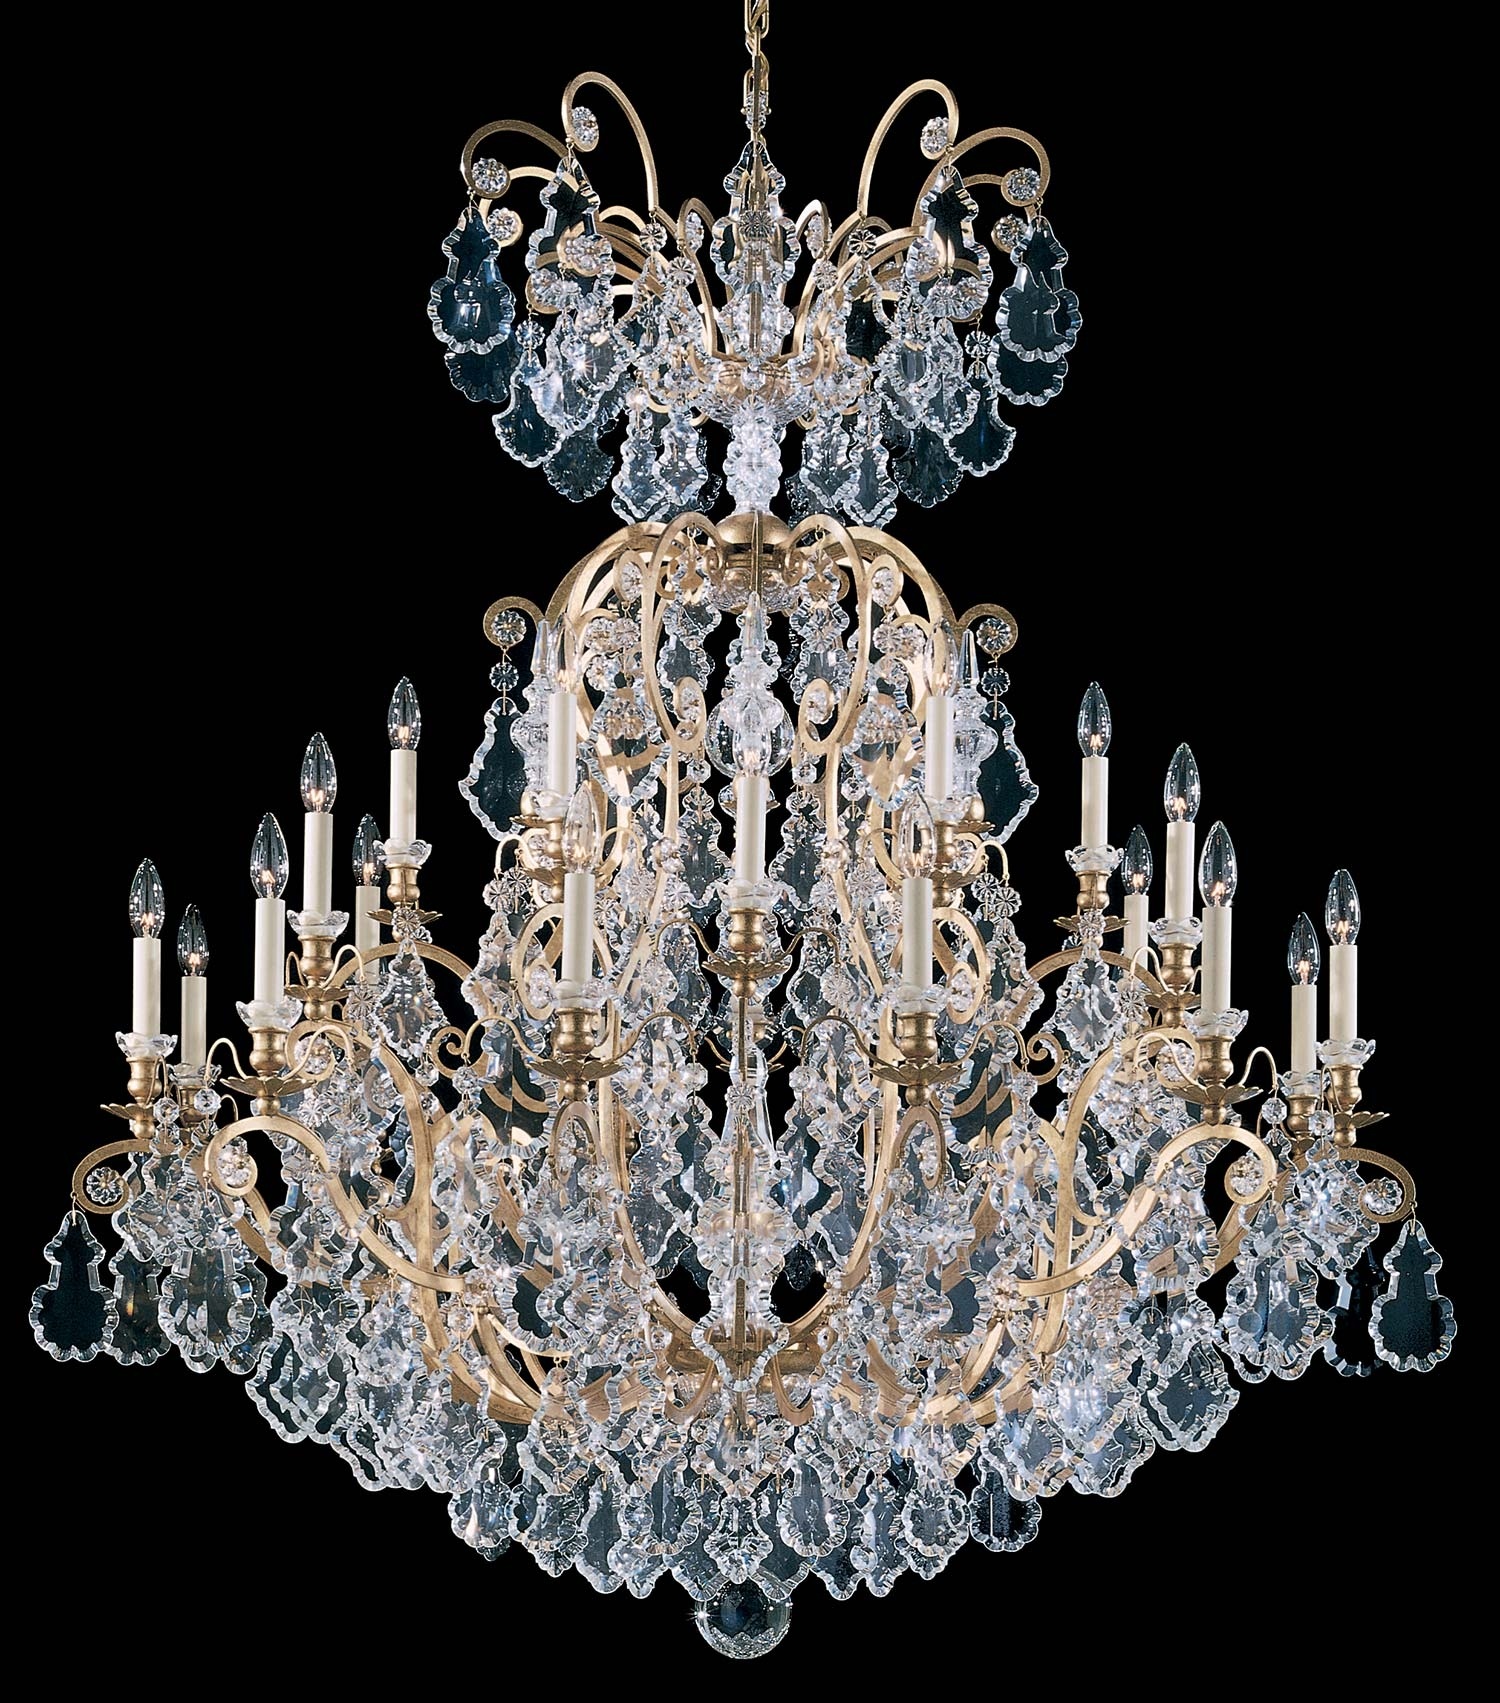 Schonbek 2774 Versailles Collection Chandelier Crystal Traditional For Baroque Chandelier (#11 of 12)